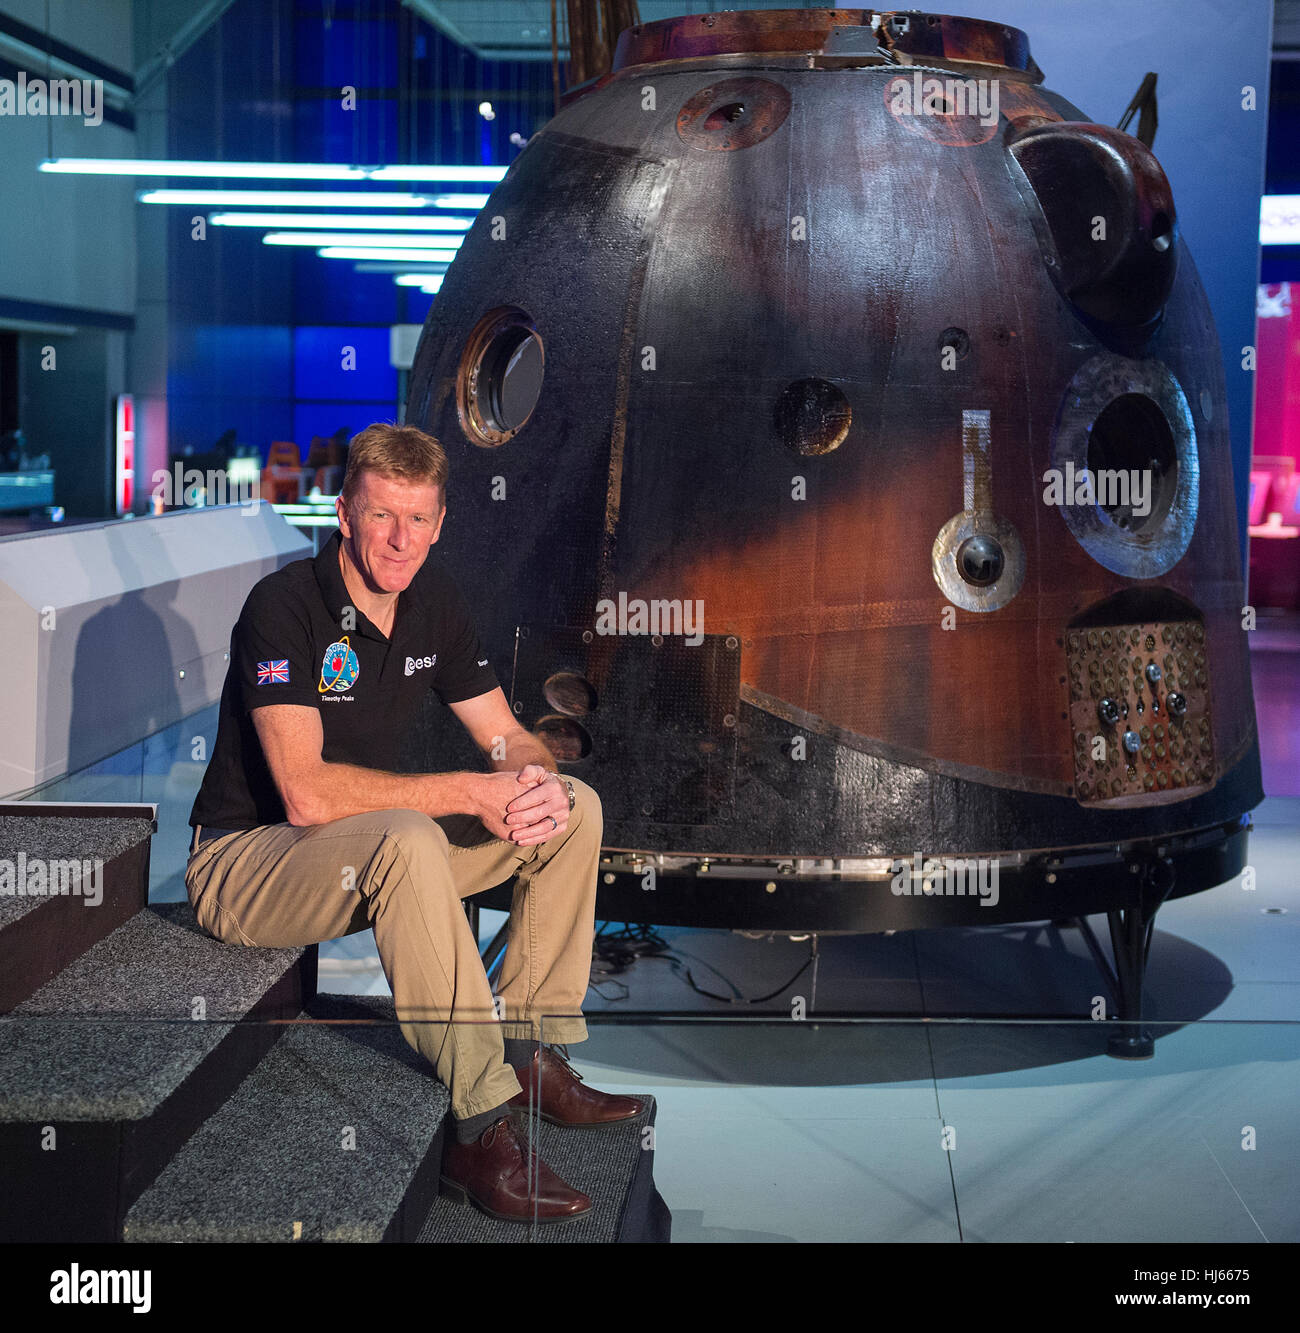 Science Museum, London, UK. 26th January, 2017. Tim Peake's spacecraft - Soyuz TMA-19M  - is now on free public - Stock Image